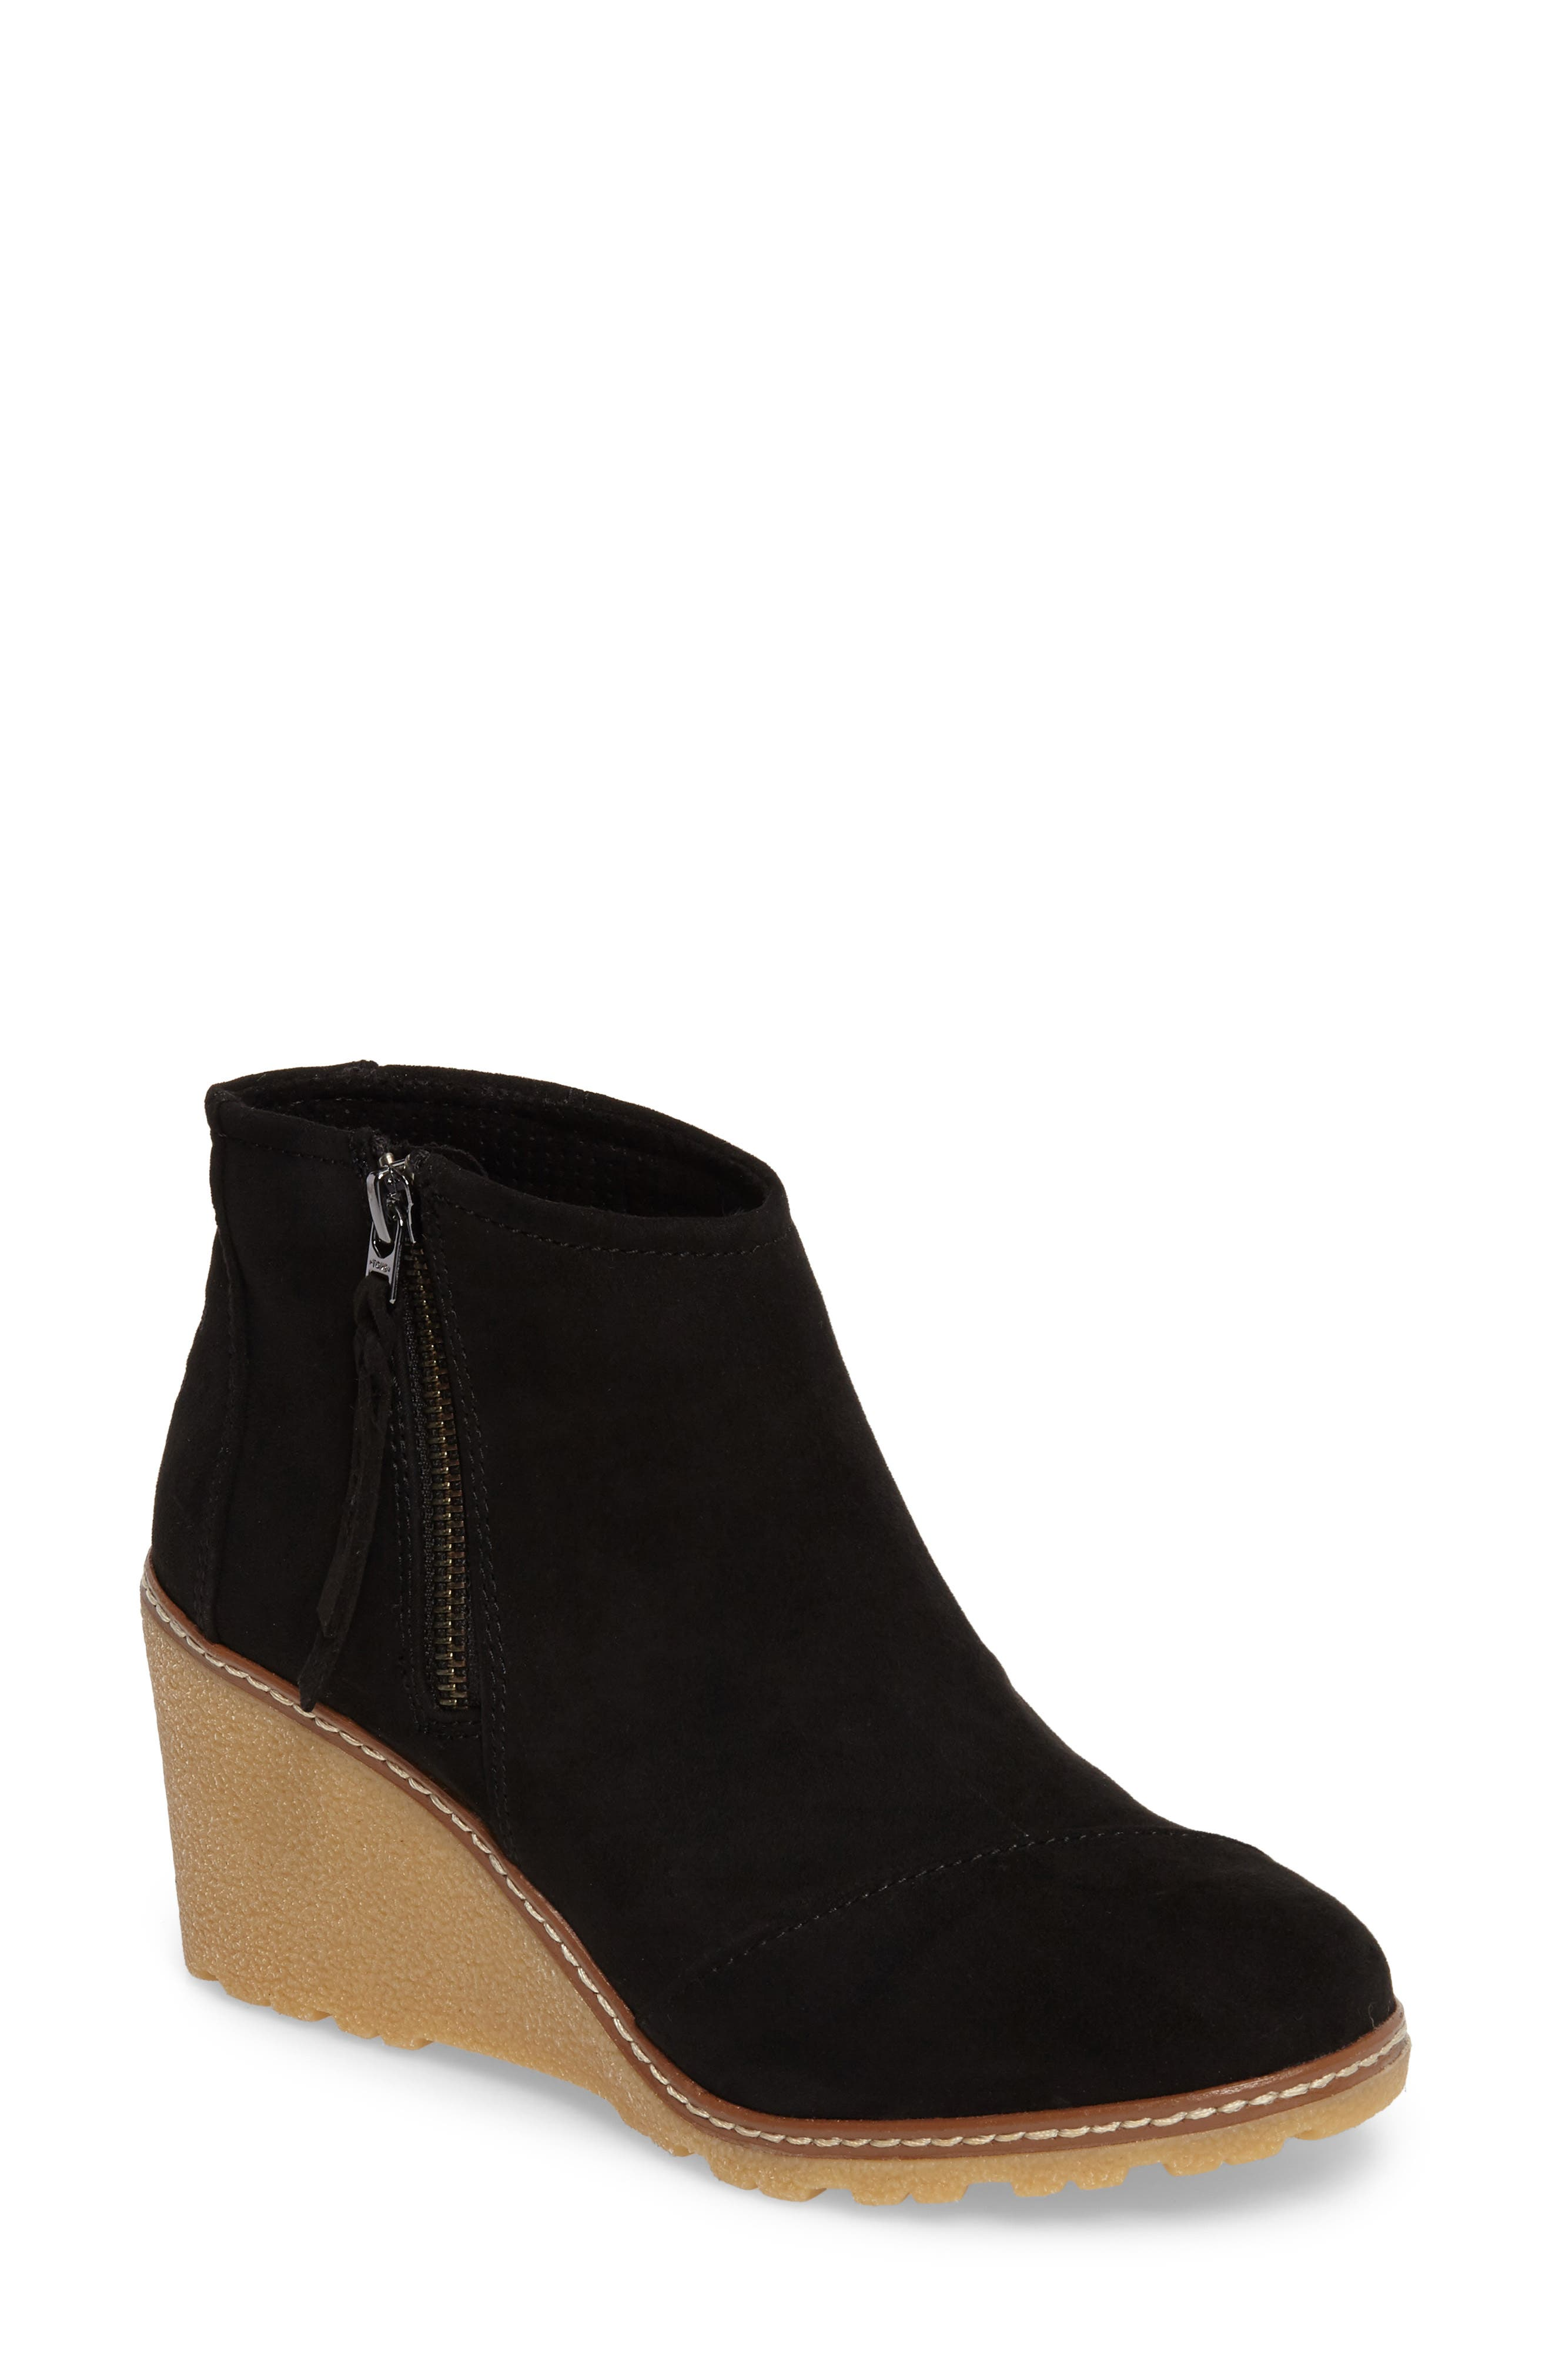 Avery Wedge Bootie,                             Main thumbnail 1, color,                             Black Microfiber